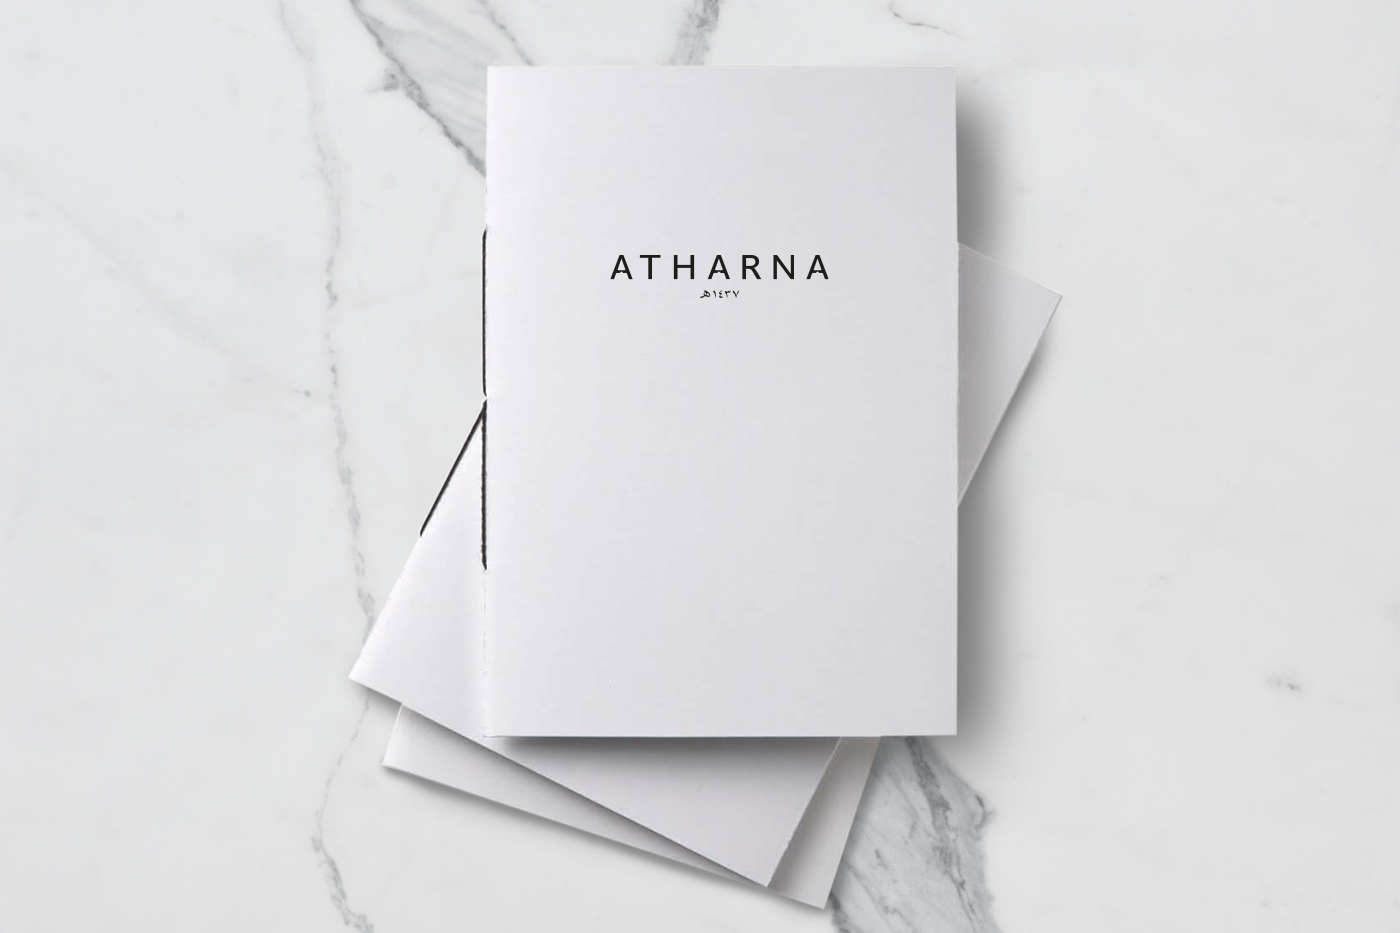 Atharna lookbook homepage image